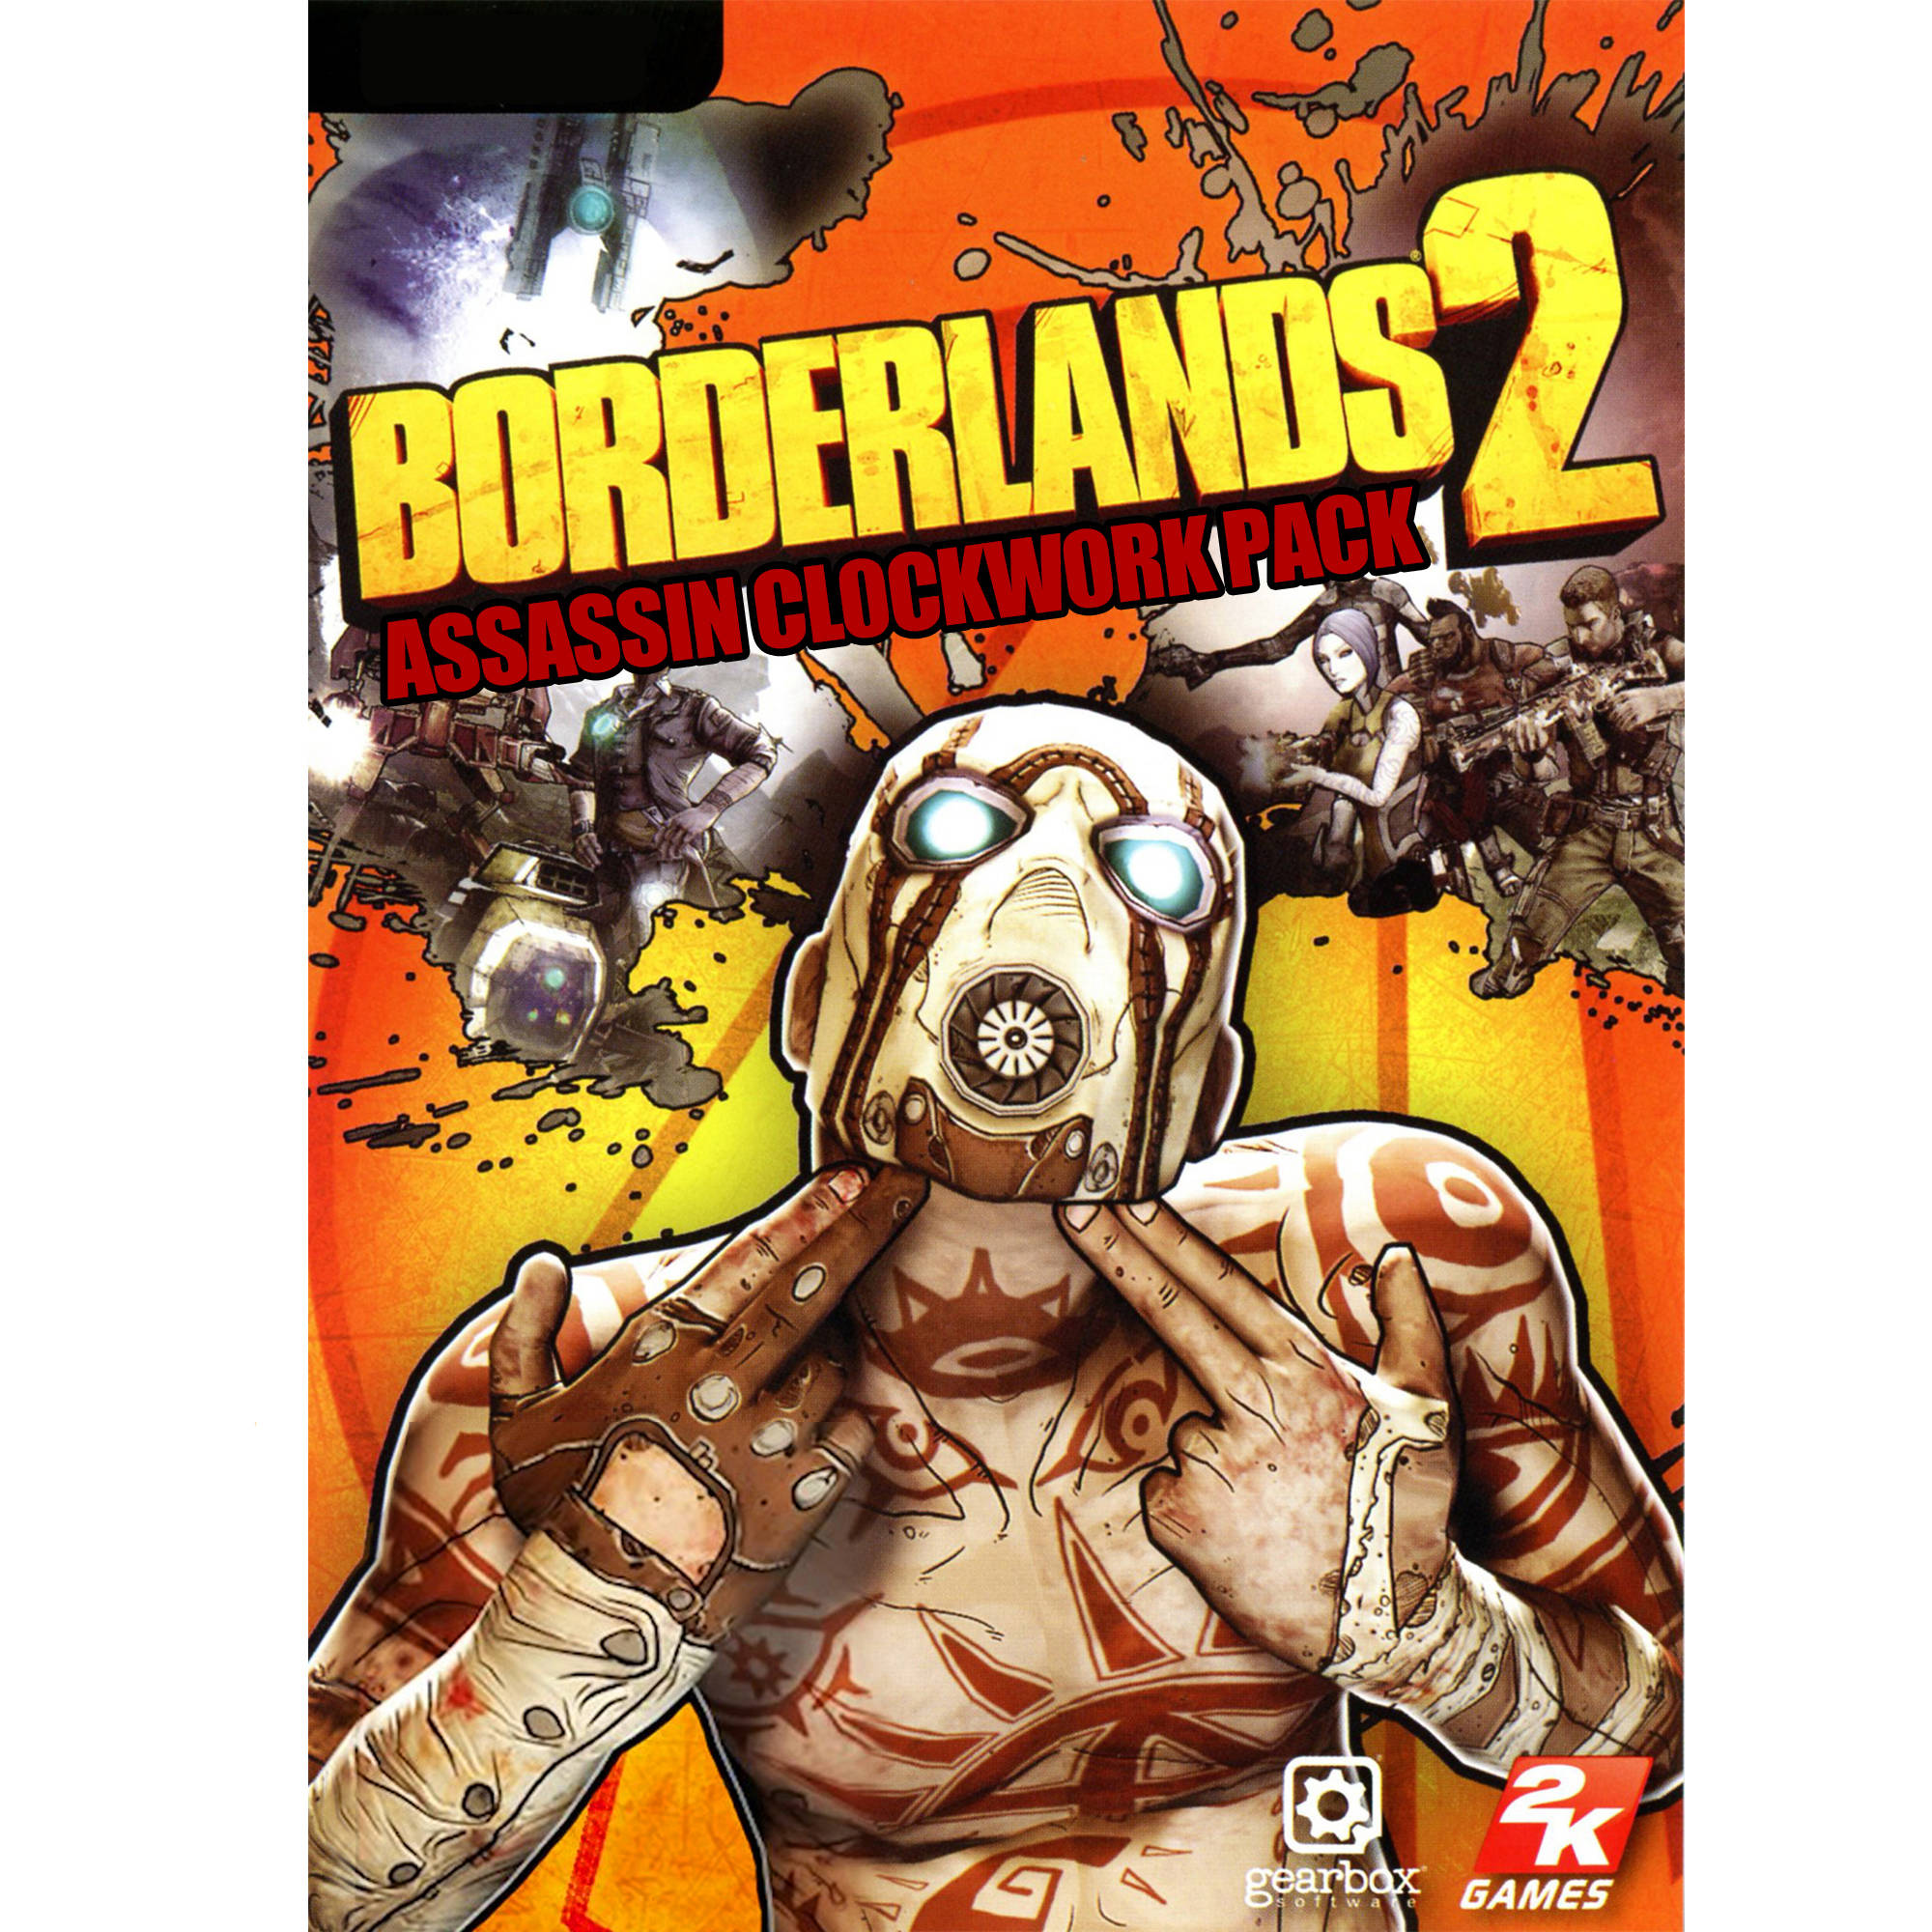 Image of Borderlands 2: Assassin Cl0ckw0rk Pack